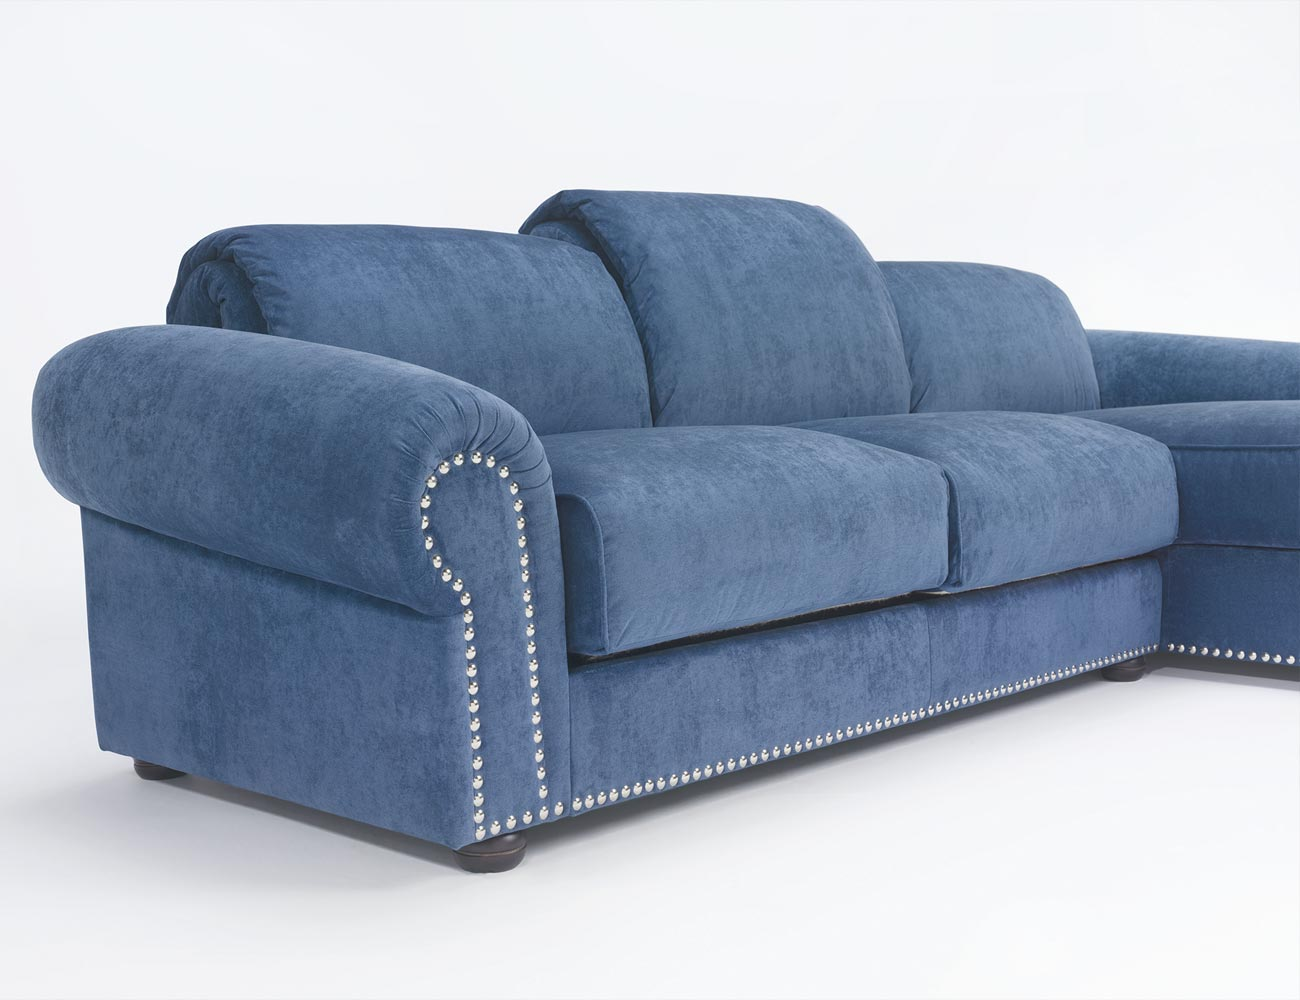 Sofa chaiselongue gran lujo decorativo azul 19